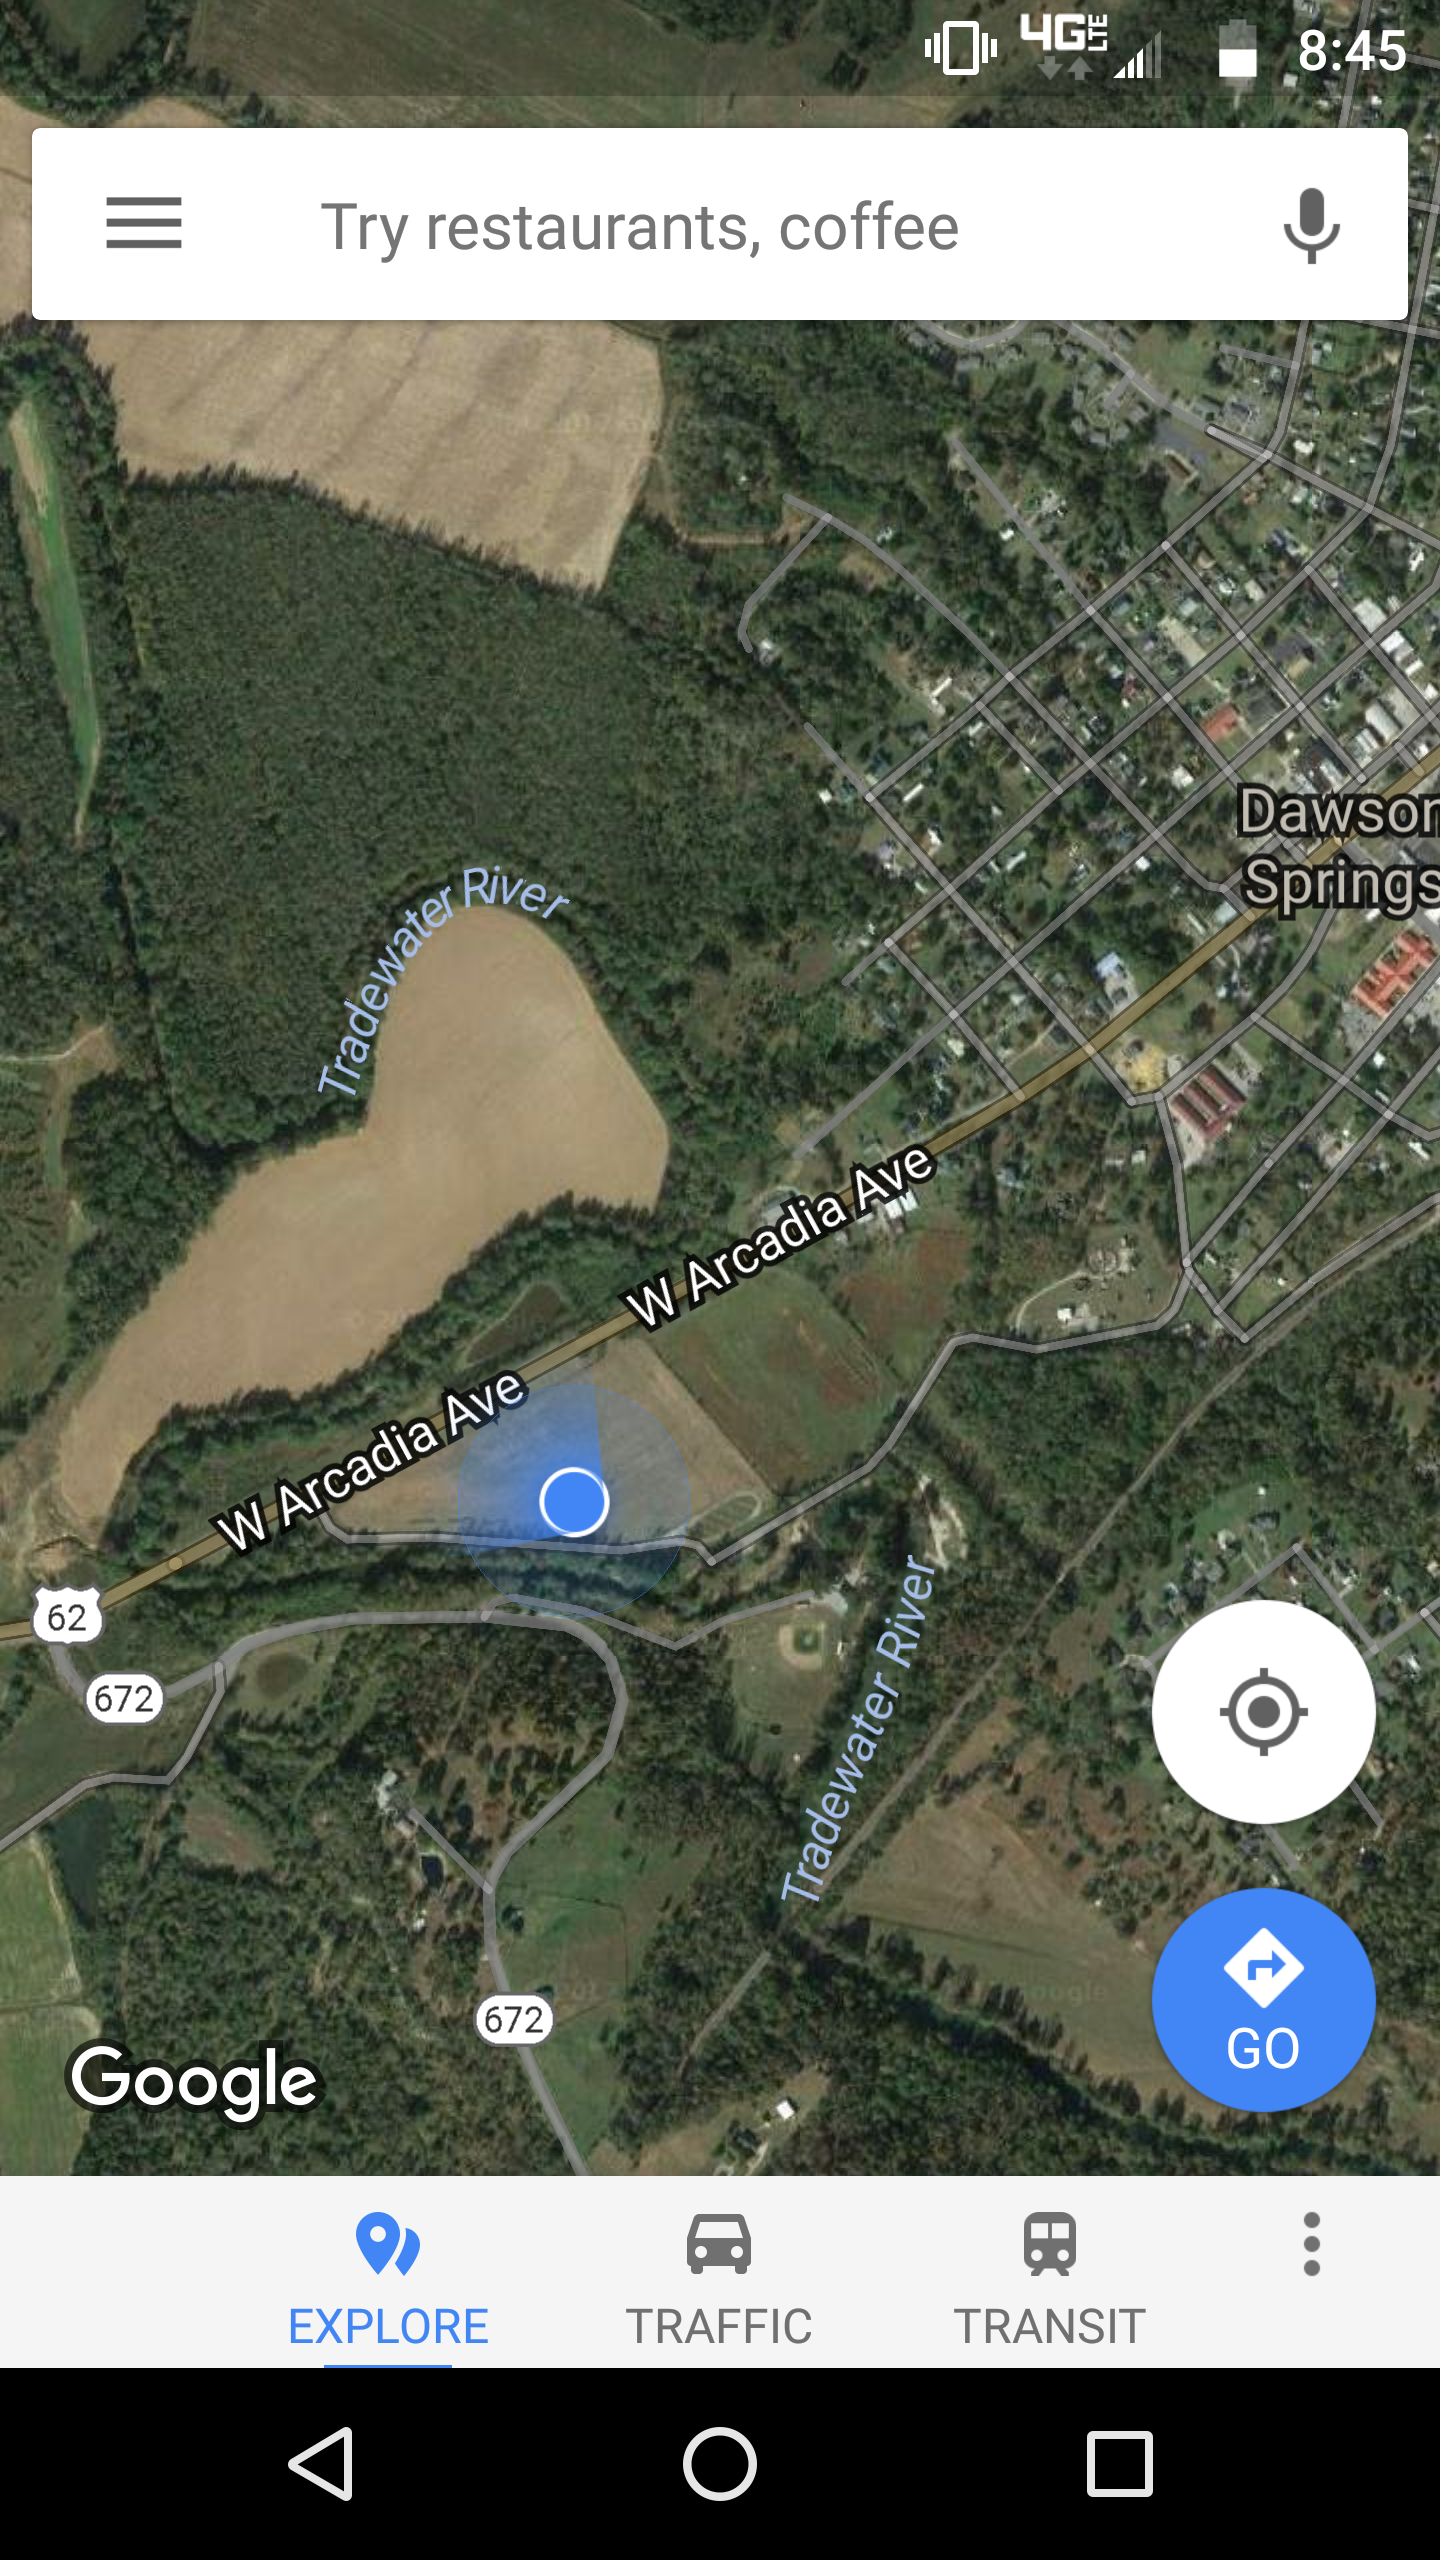 The blue dot marks my location on the map. We camped in a large field just outside of town across the Tradewater River from an old minor league baseball field.